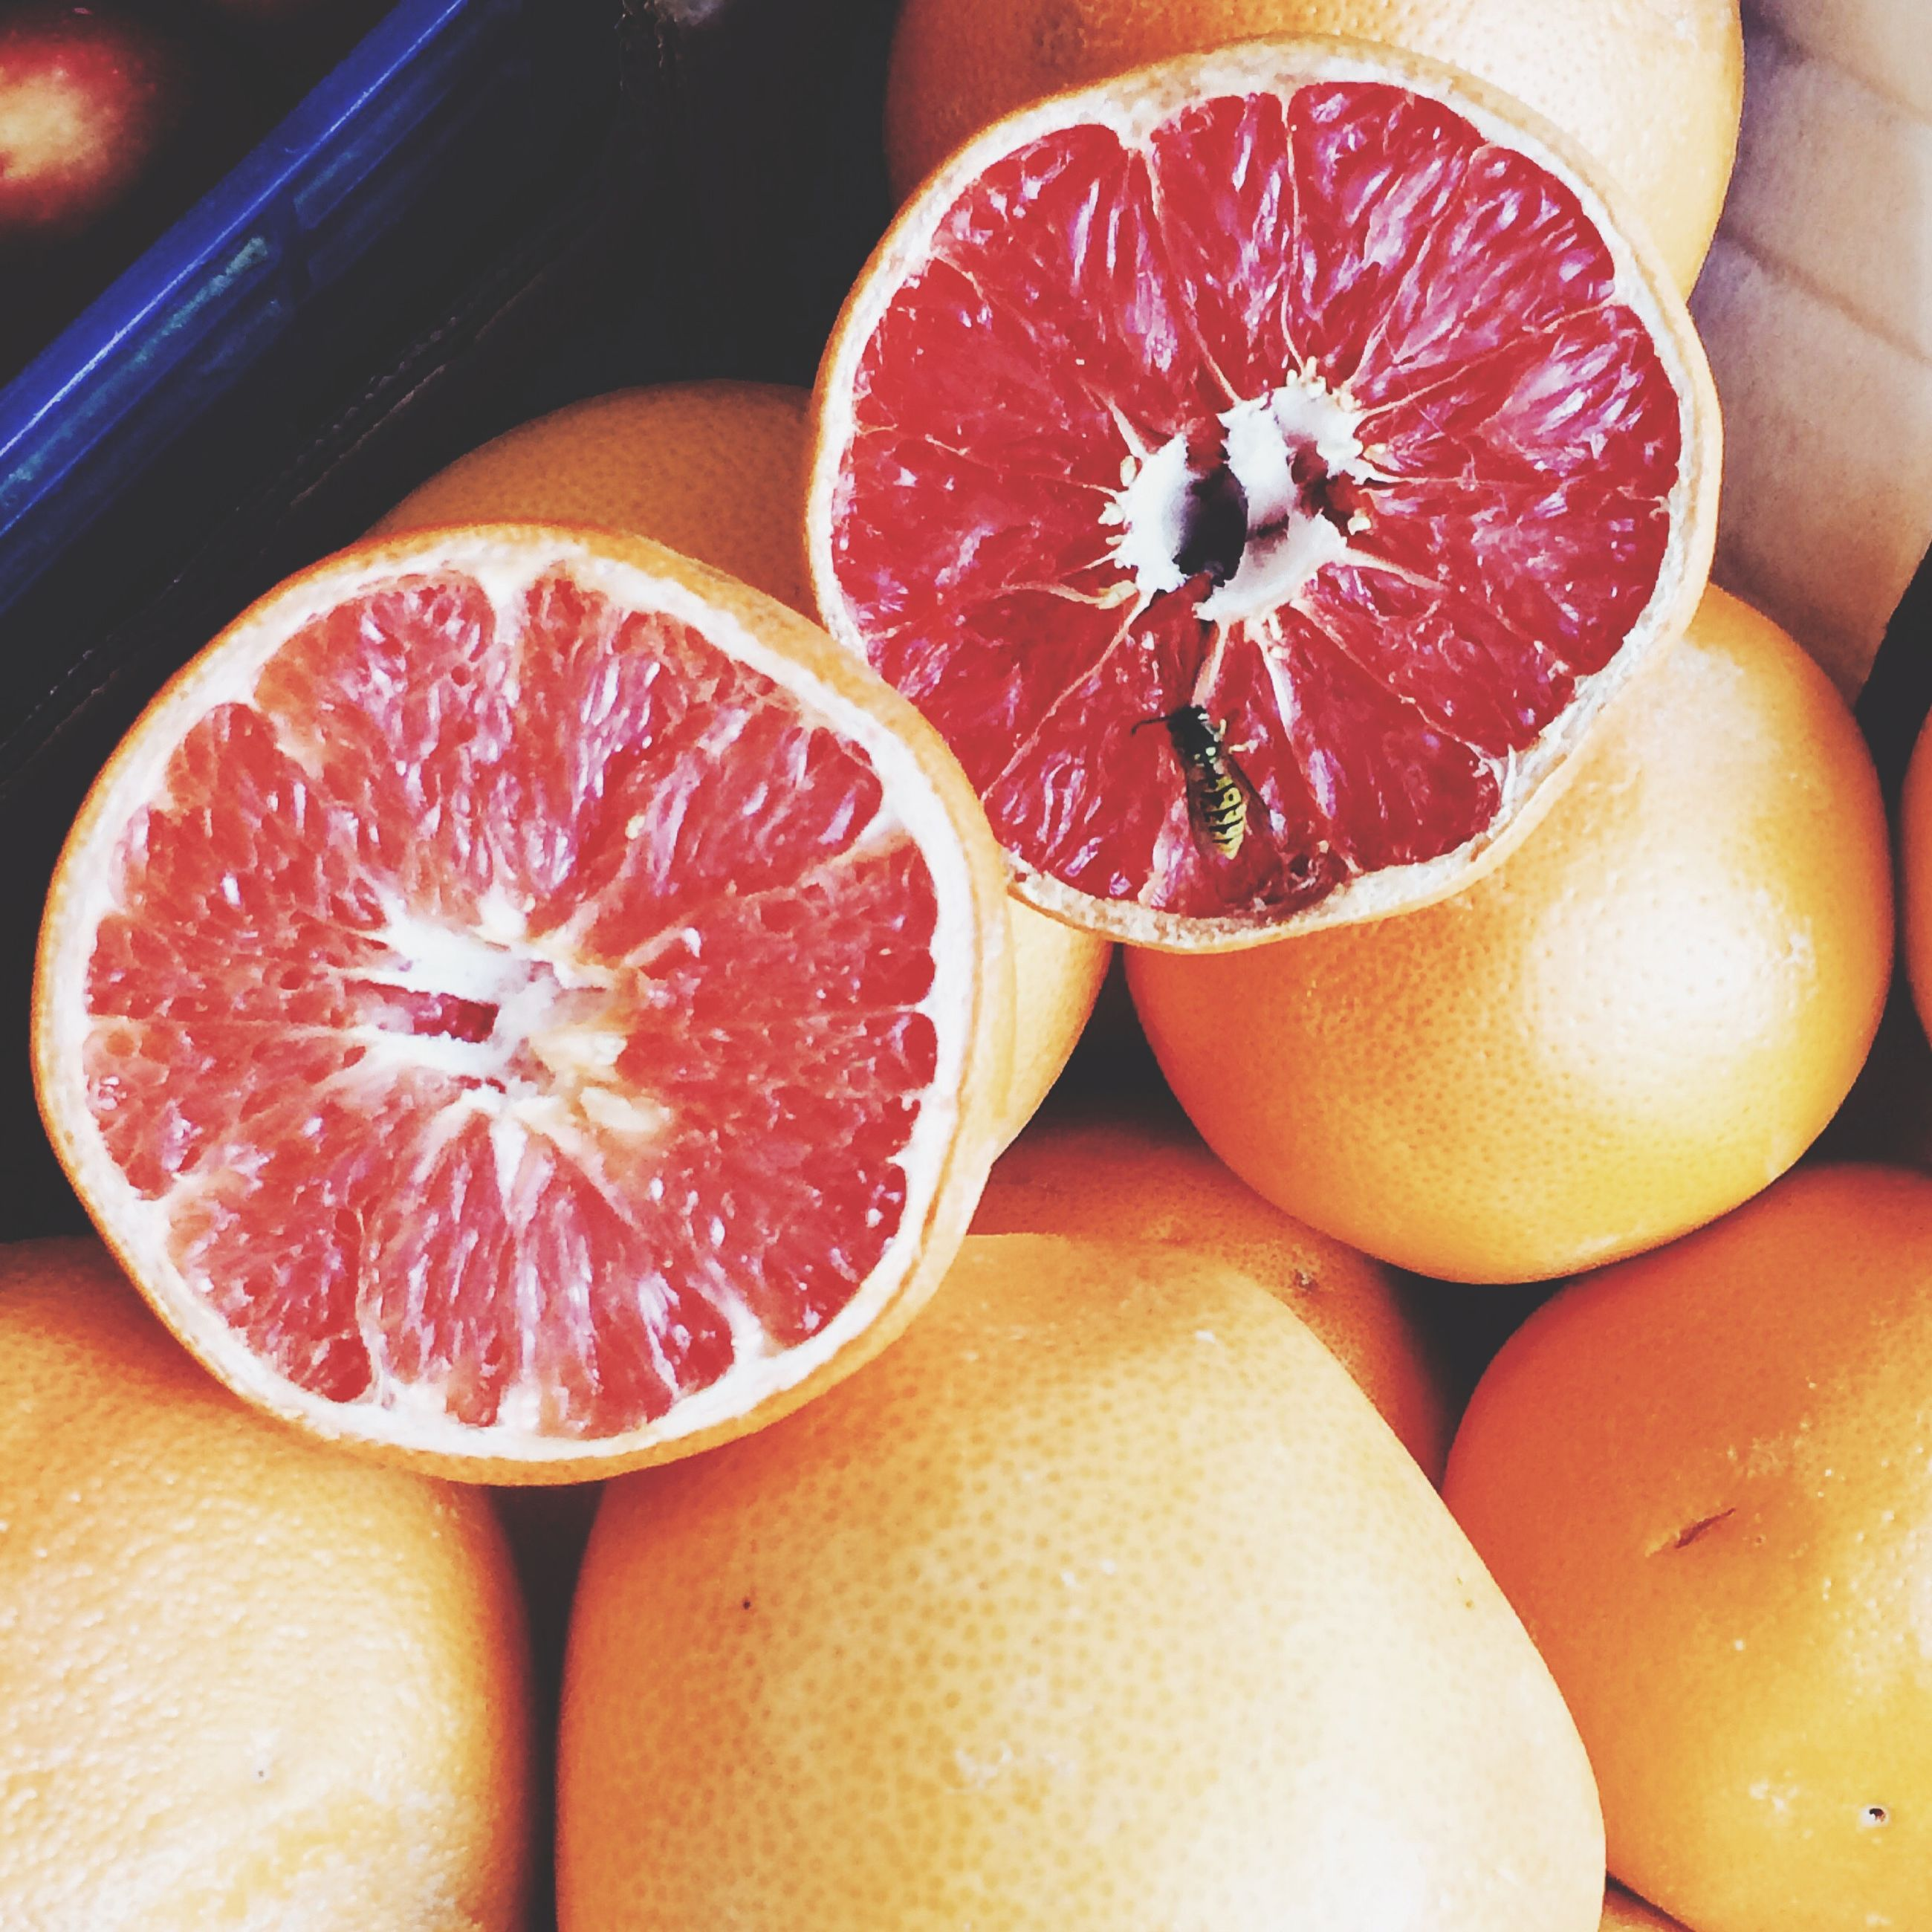 food and drink, food, freshness, fruit, healthy eating, indoors, still life, close-up, slice, orange color, orange - fruit, juicy, red, table, ripe, citrus fruit, cross section, organic, halved, healthy lifestyle